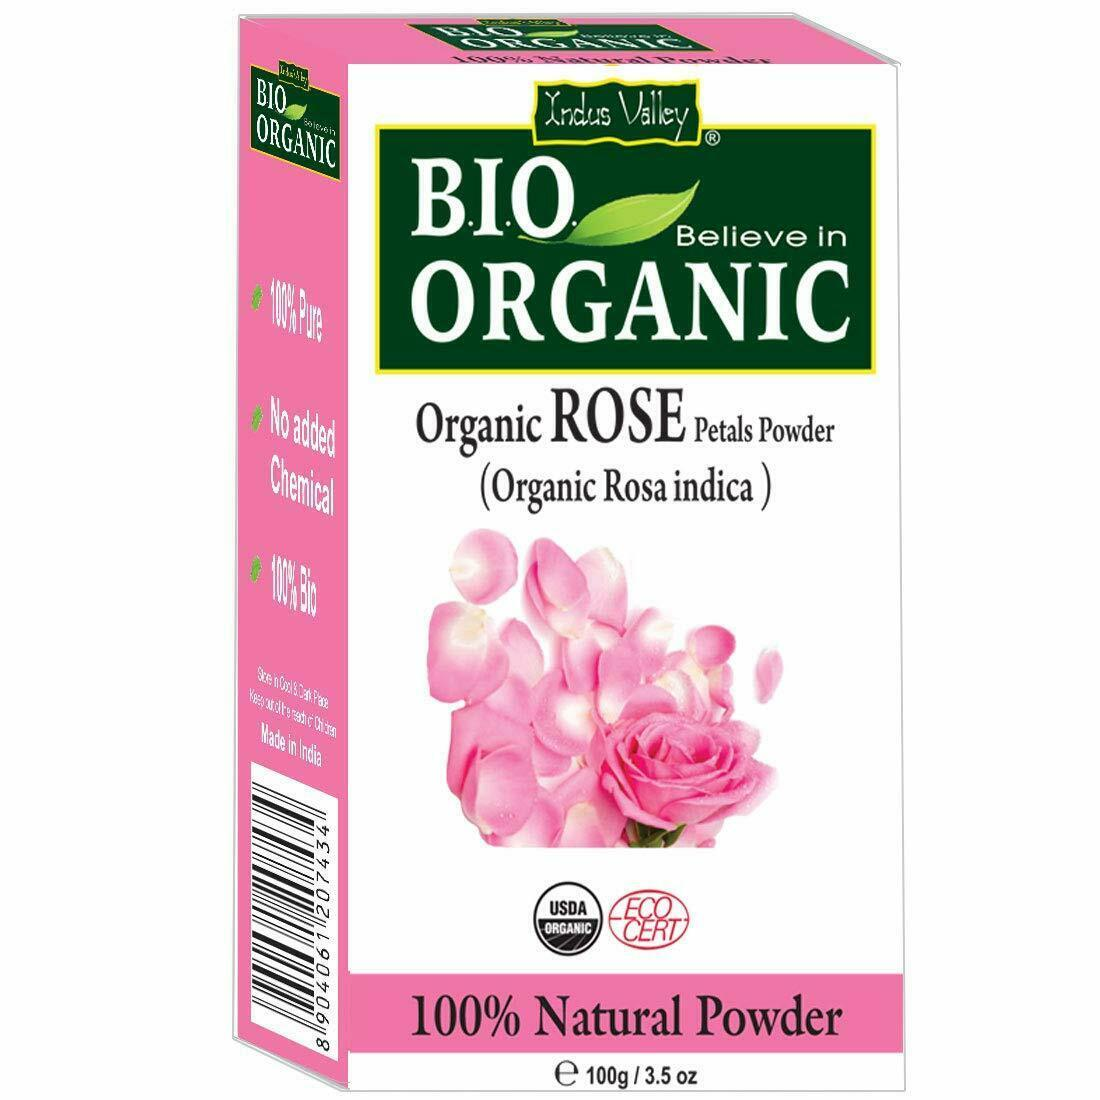 Indus Valley 100% Organic Rose Petals Powder image 2